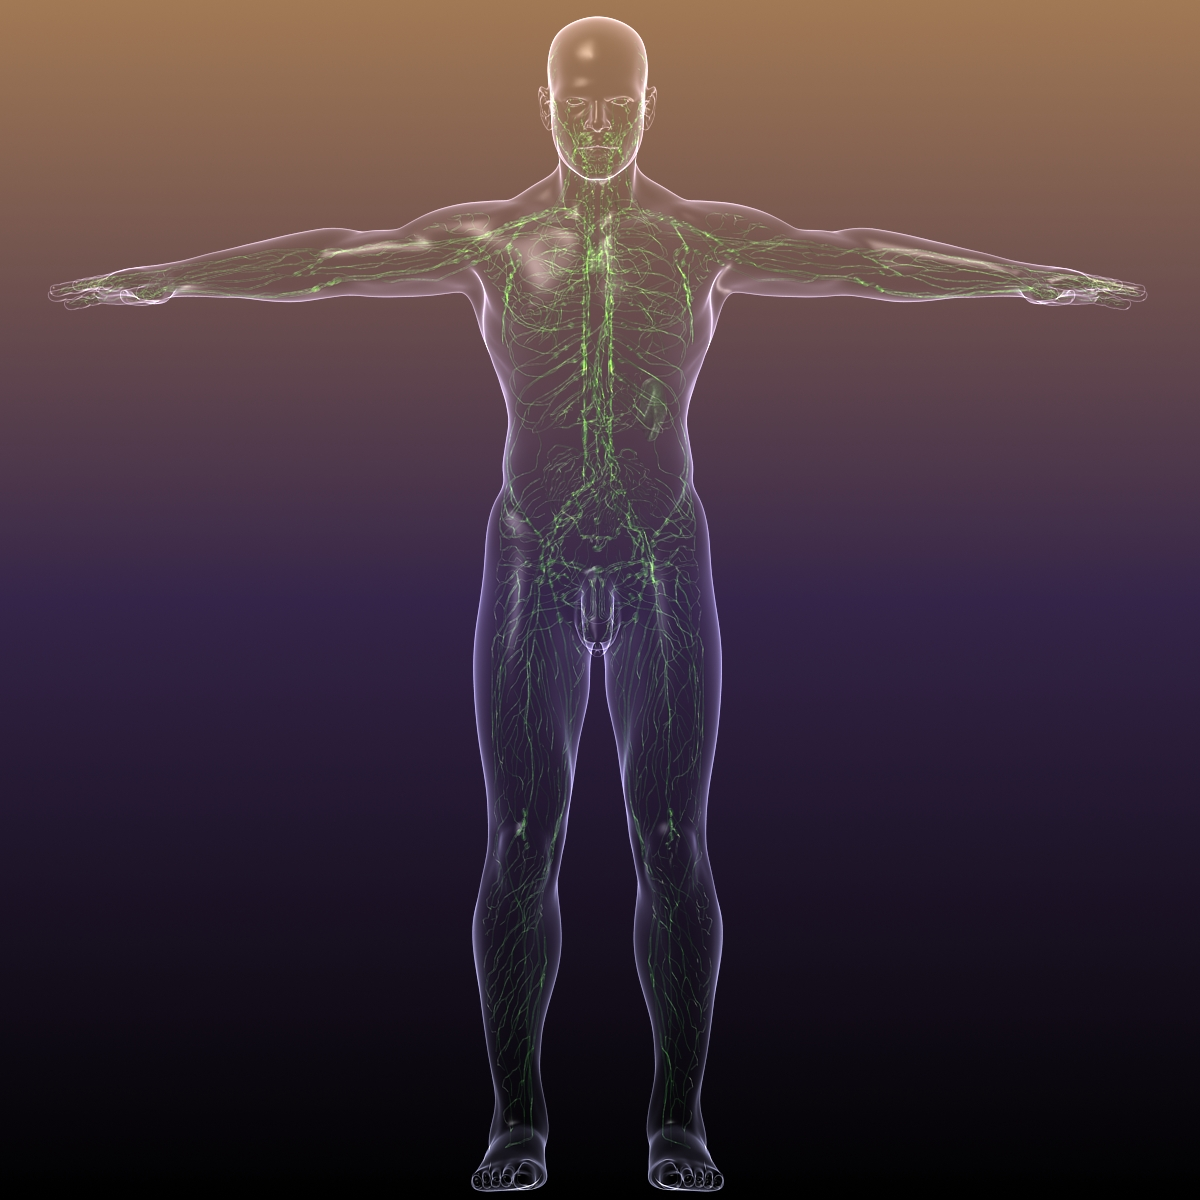 Lymphatic System in Human Body 3D Model – Buy Lymphatic System in ...